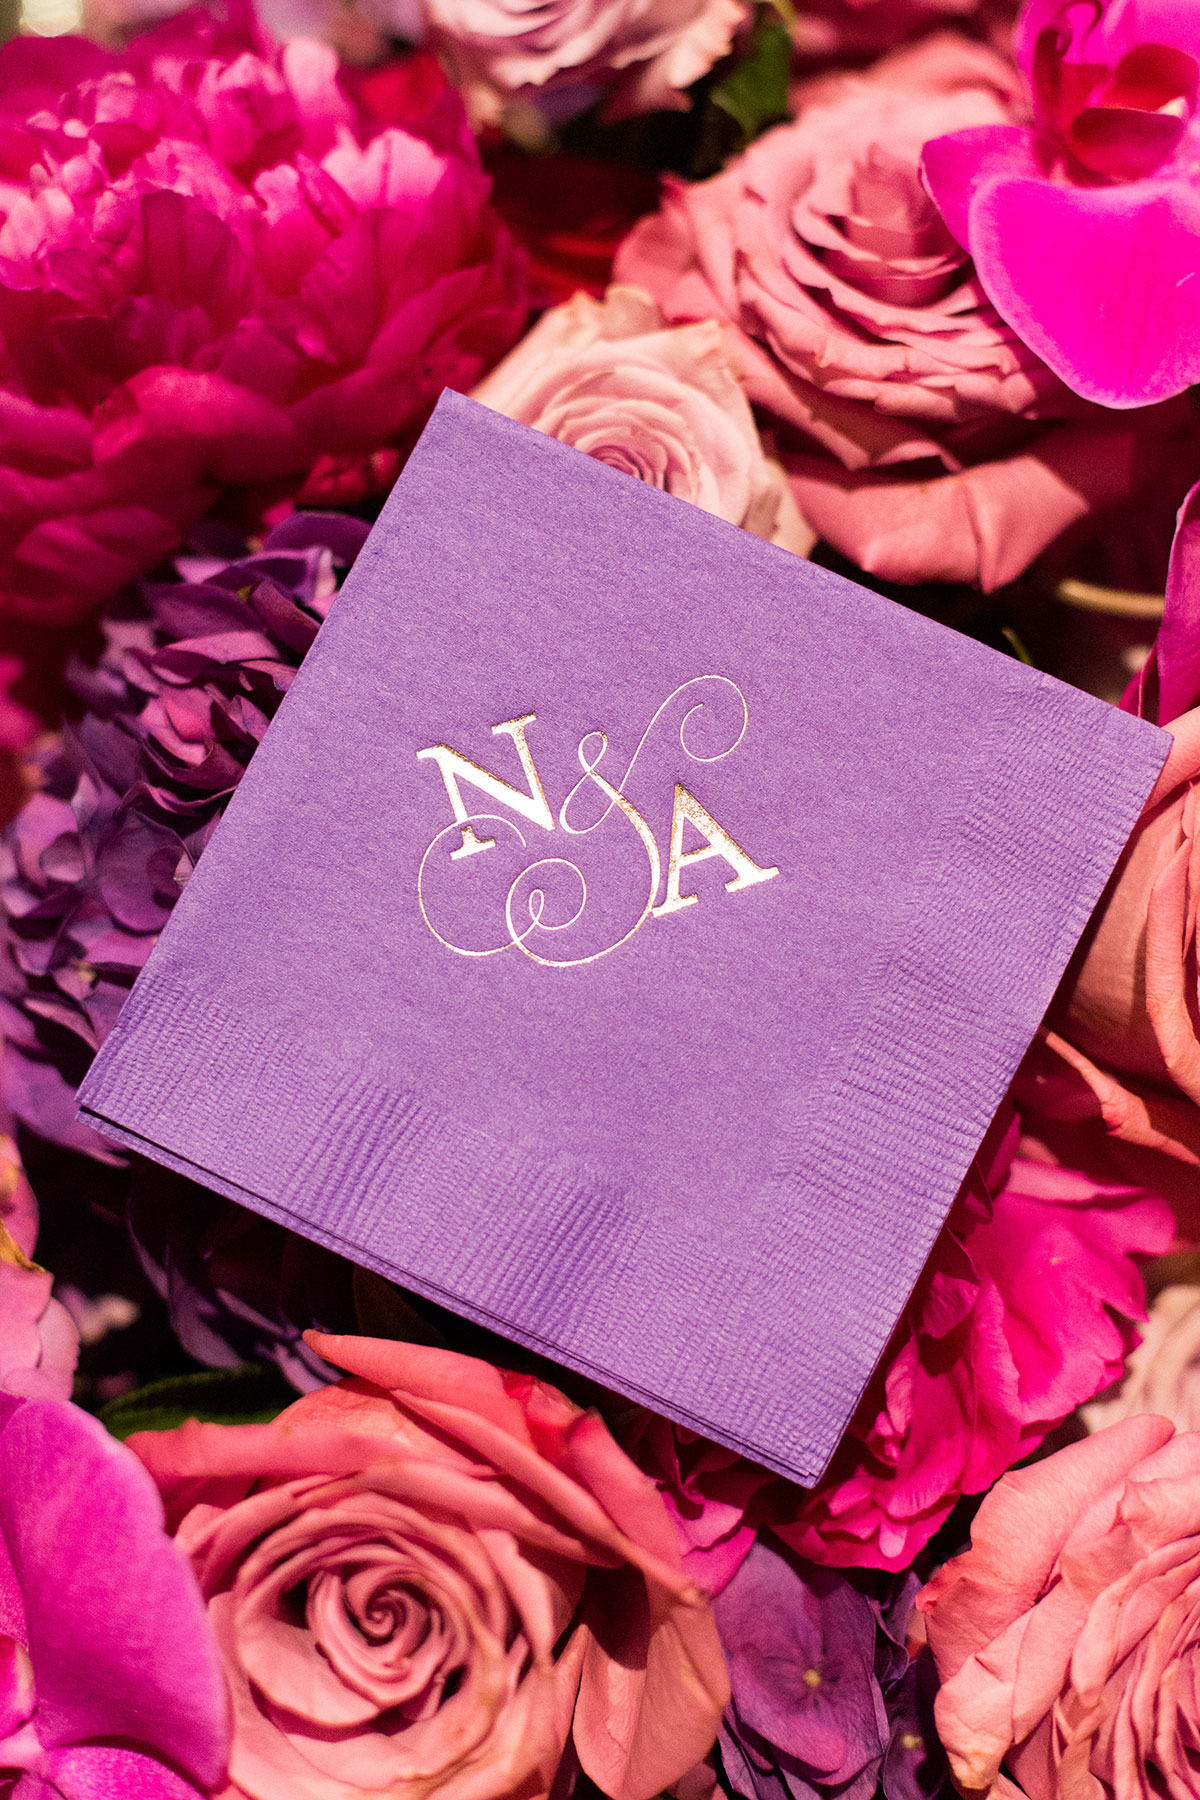 bride and groom's initials on cocktail napkin